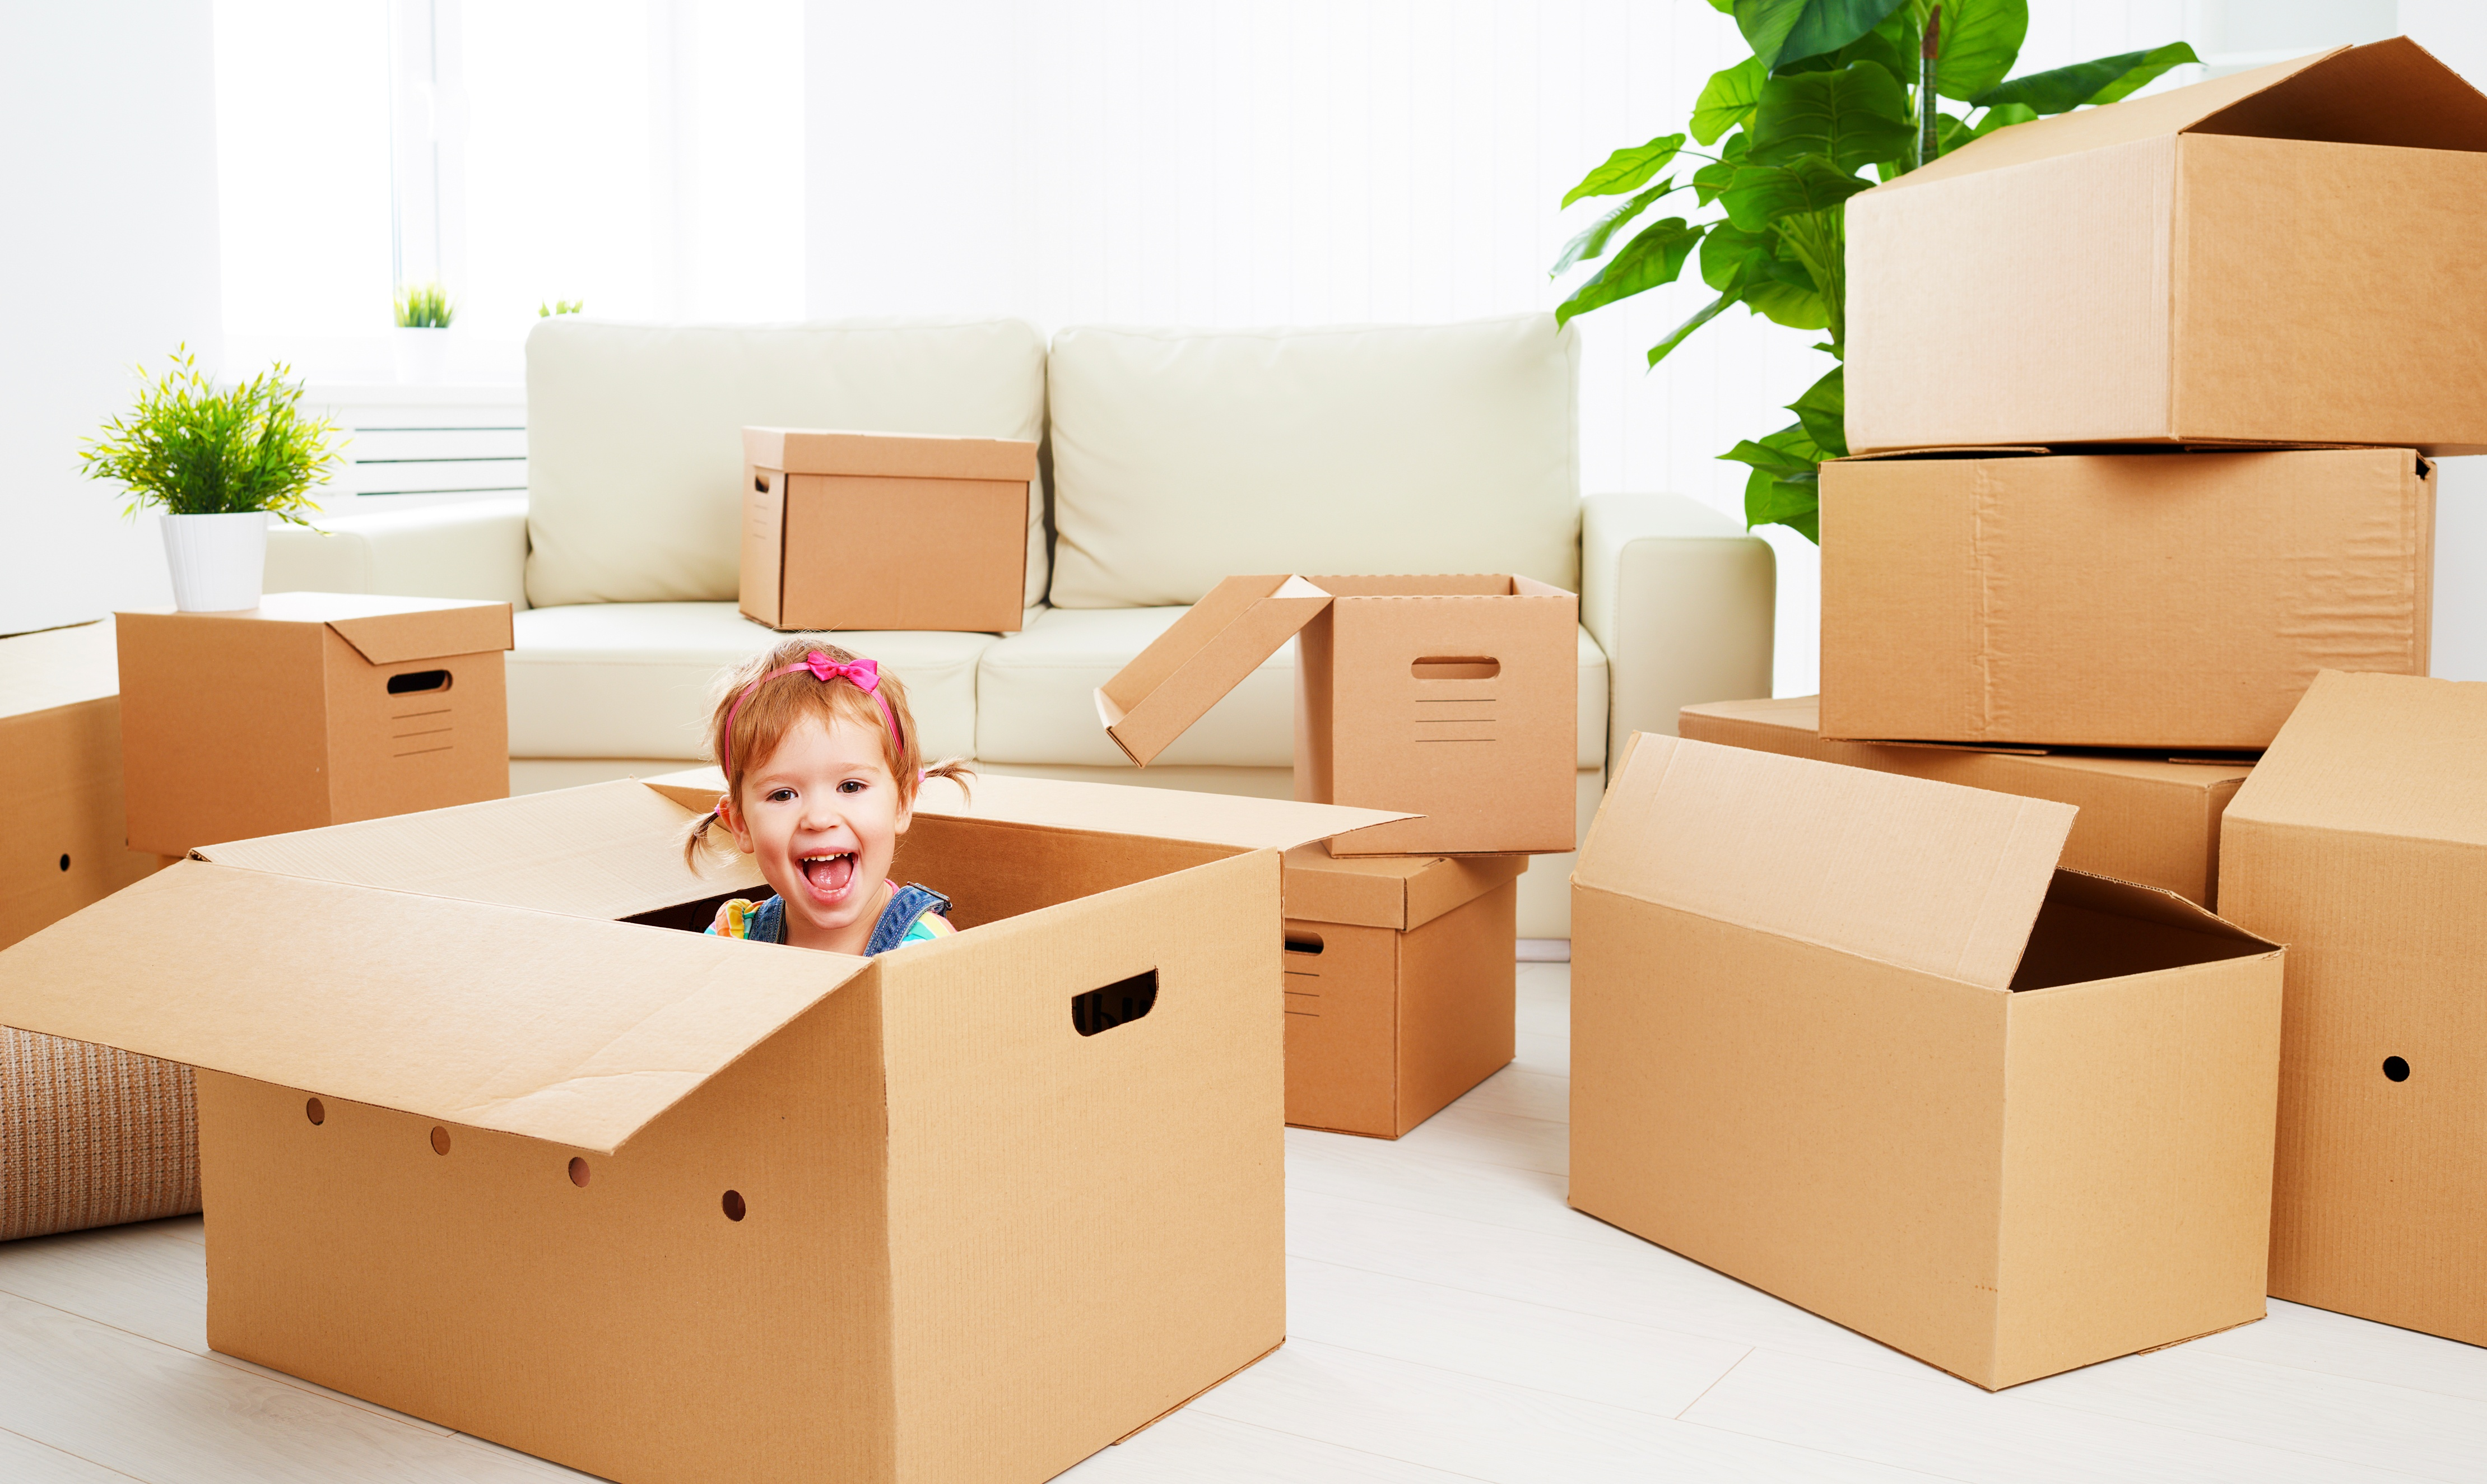 Tips to keep kids happy on moving day